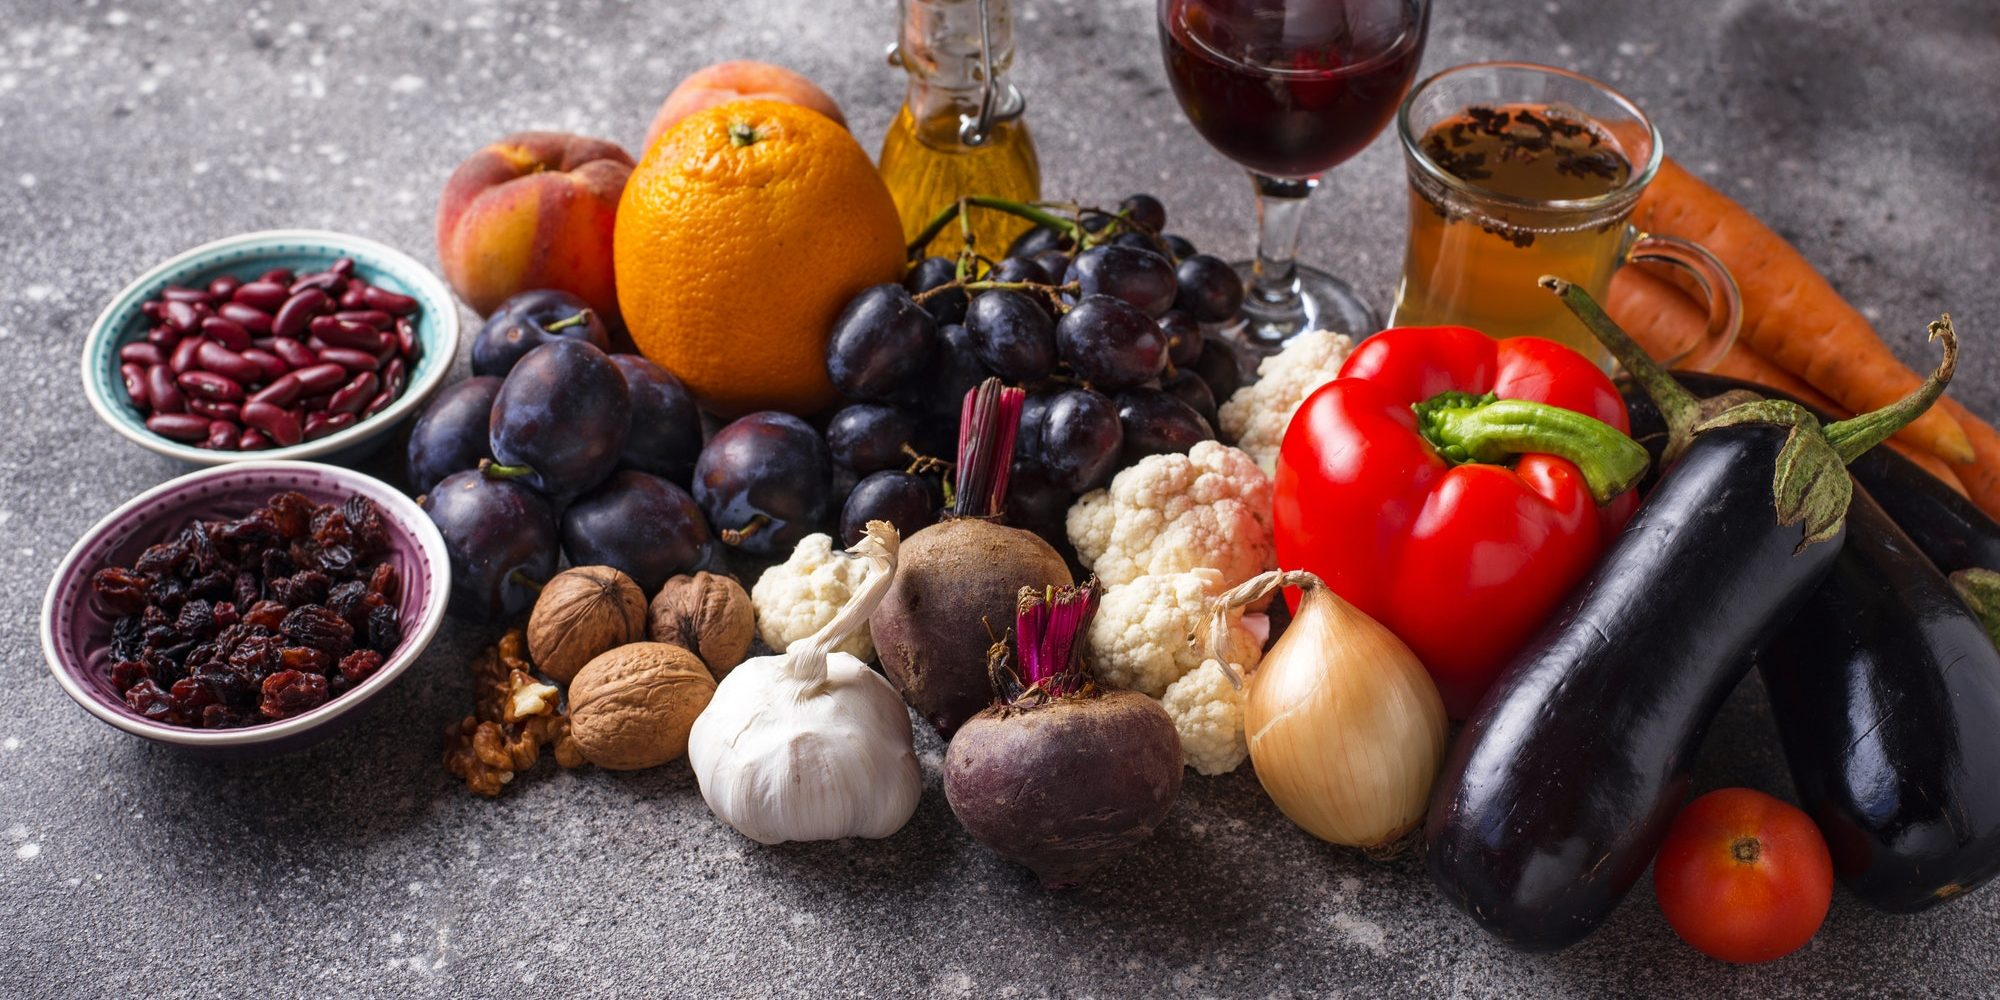 Antioxidants in products. Clean eating